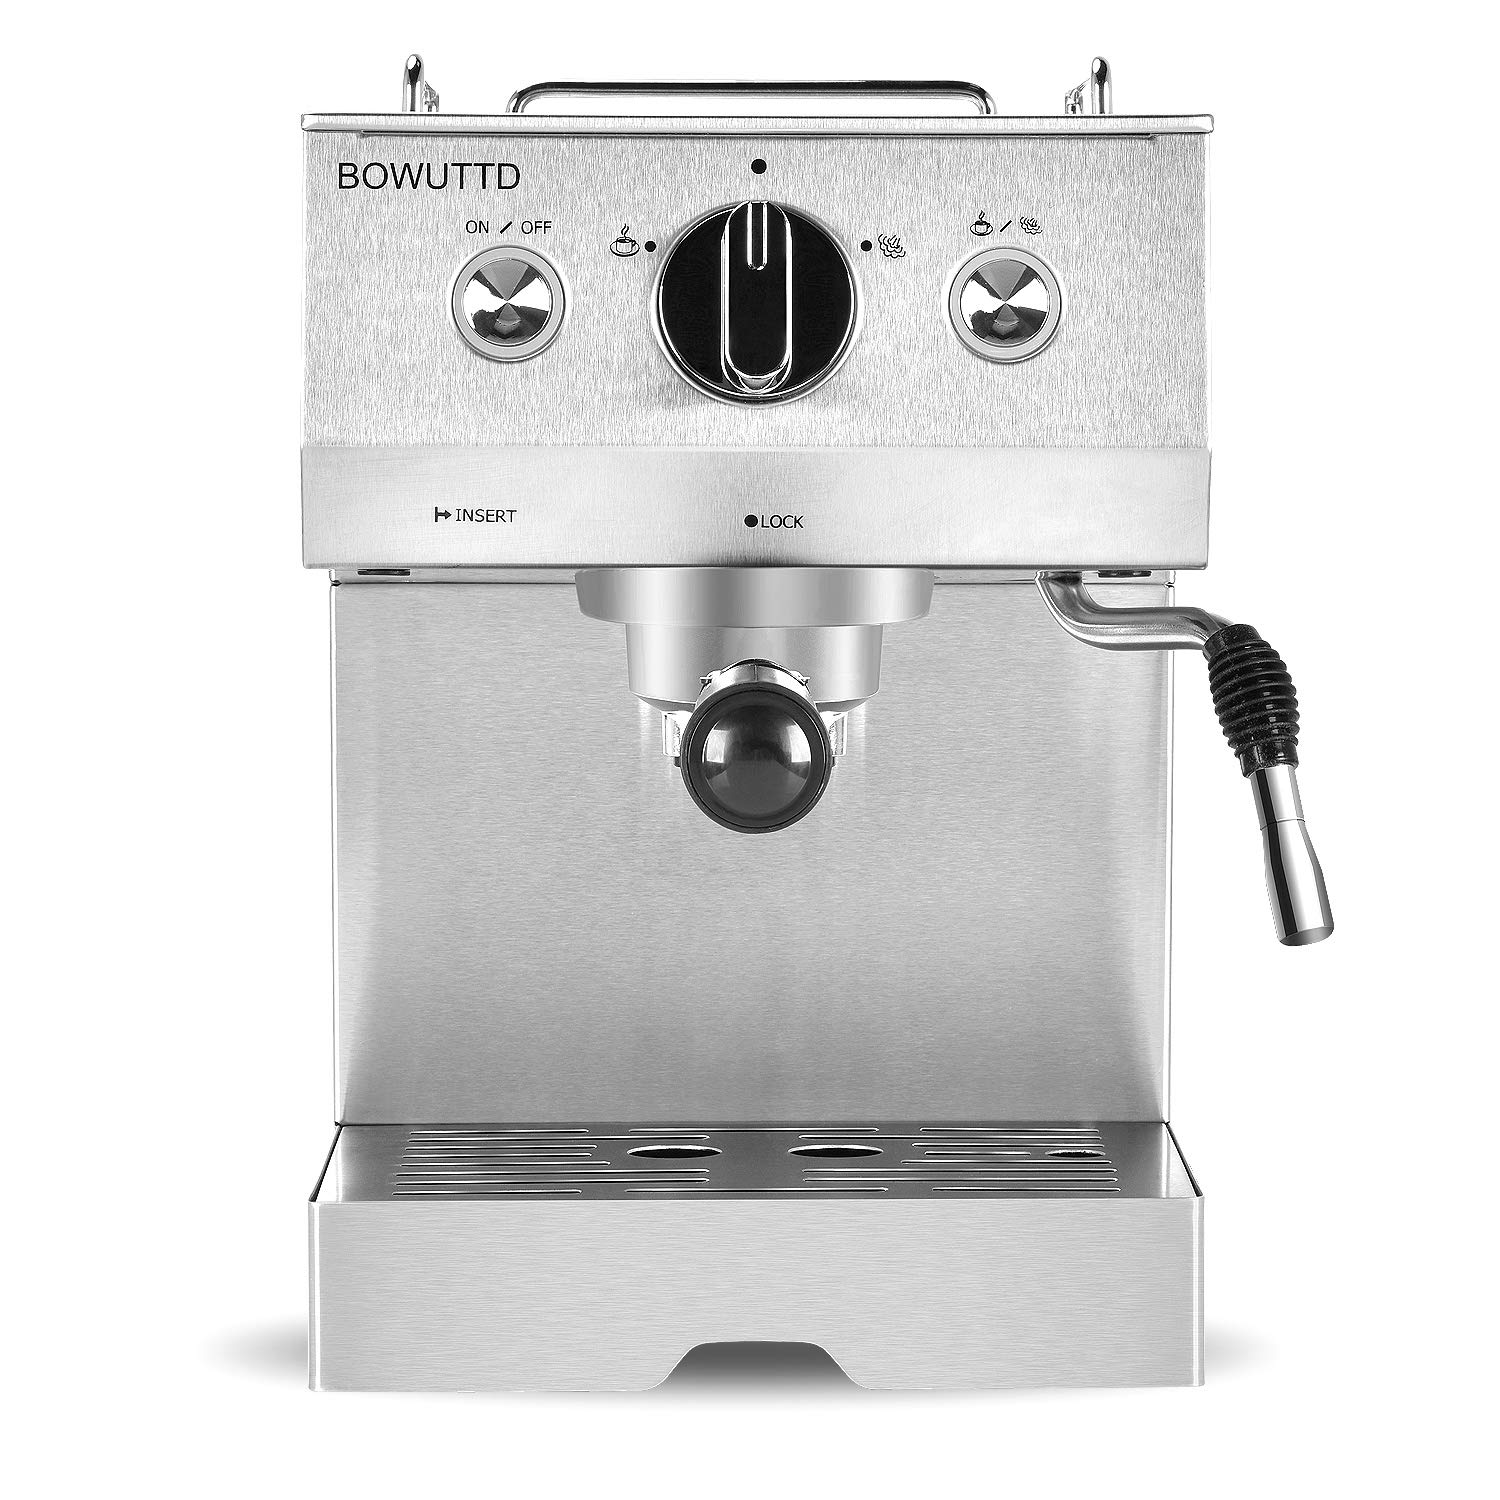 BOWUTTD Espresso Machine Coffee Maker, 1.25L Coffee Machine,Cappuccino, Latte, Moka and Espresso Maker with Milk Frothing Arm for Home and Office, 1050W, 15 Bar Pump, Silver/Stainless Steel